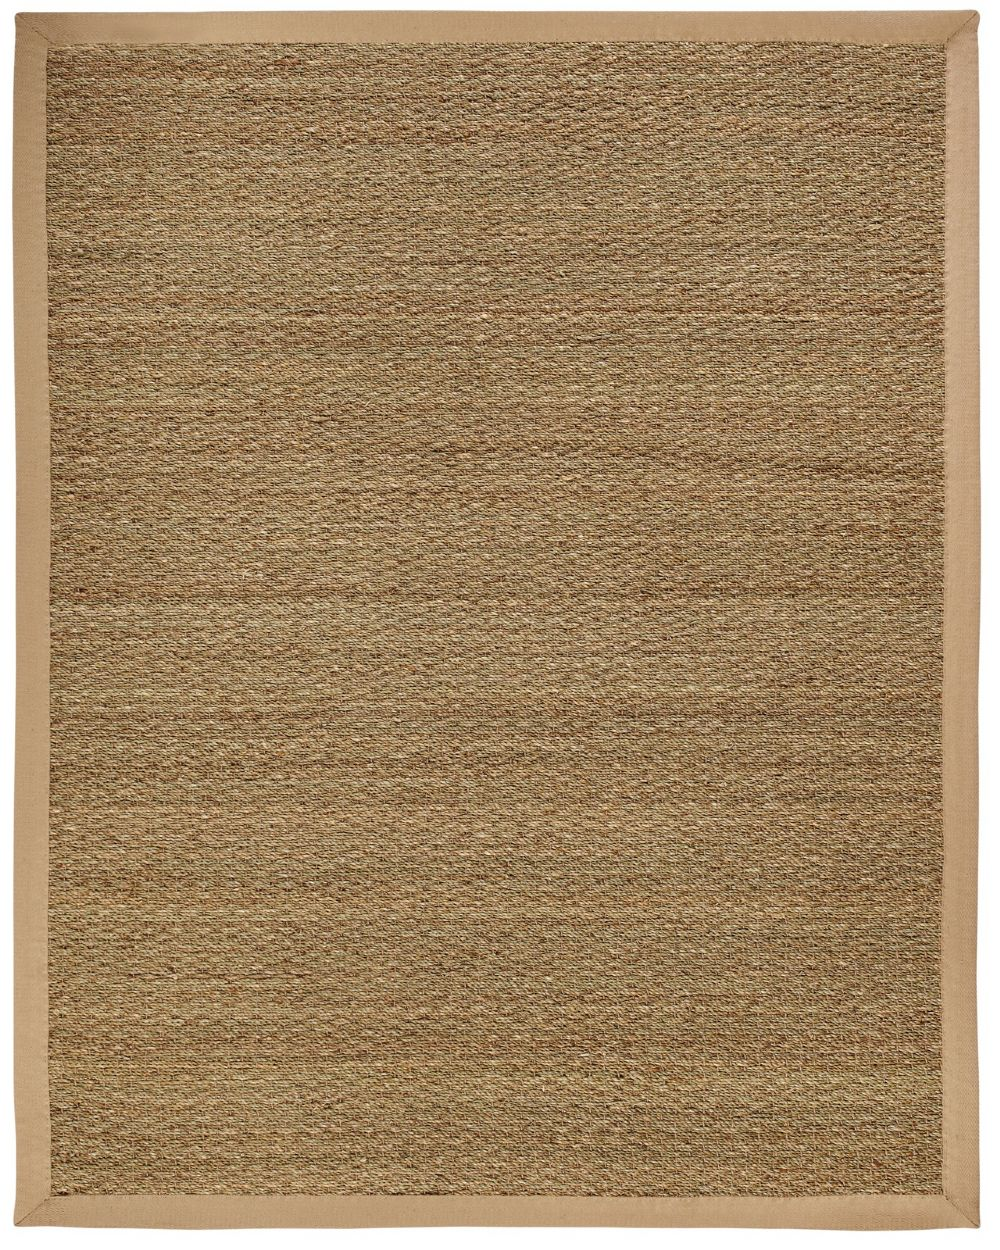 anji mountain seagrass natural fiber area rug collection